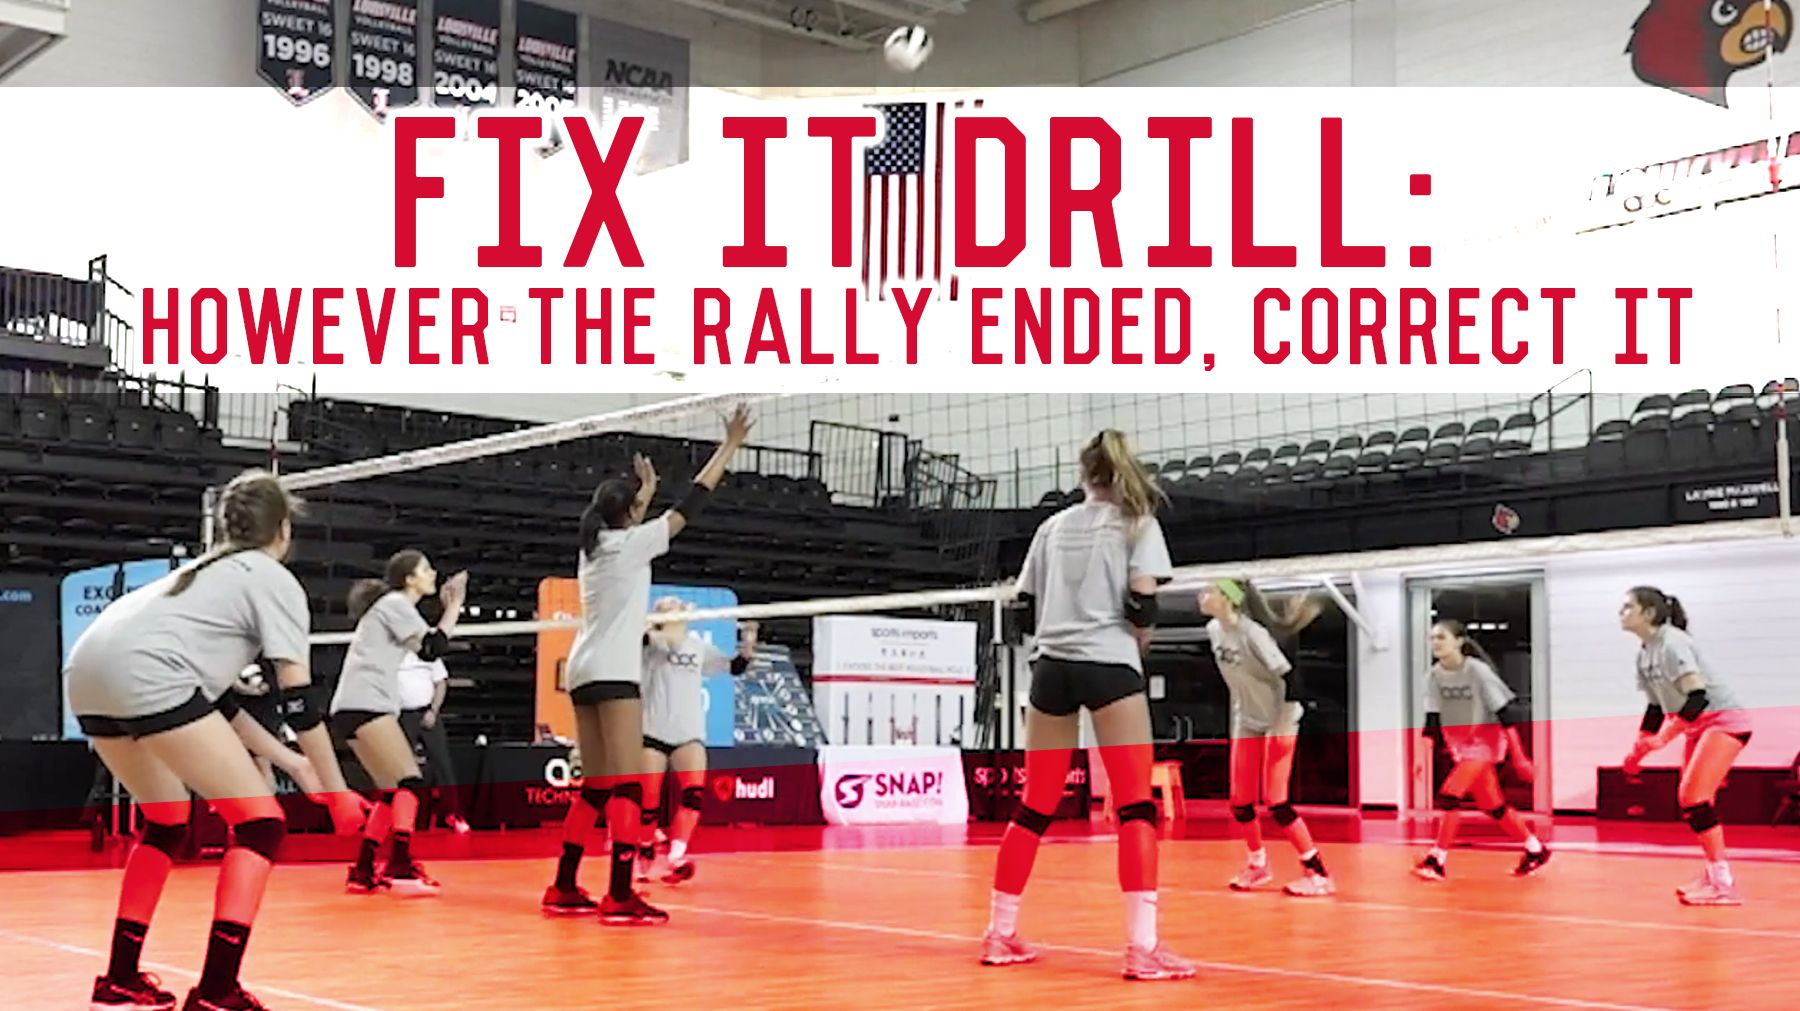 Fix It Drill However The Rally Ended Correct It The Art Of Coaching Volleyball Coaching Volleyball Volleyball Training Volleyball Skills